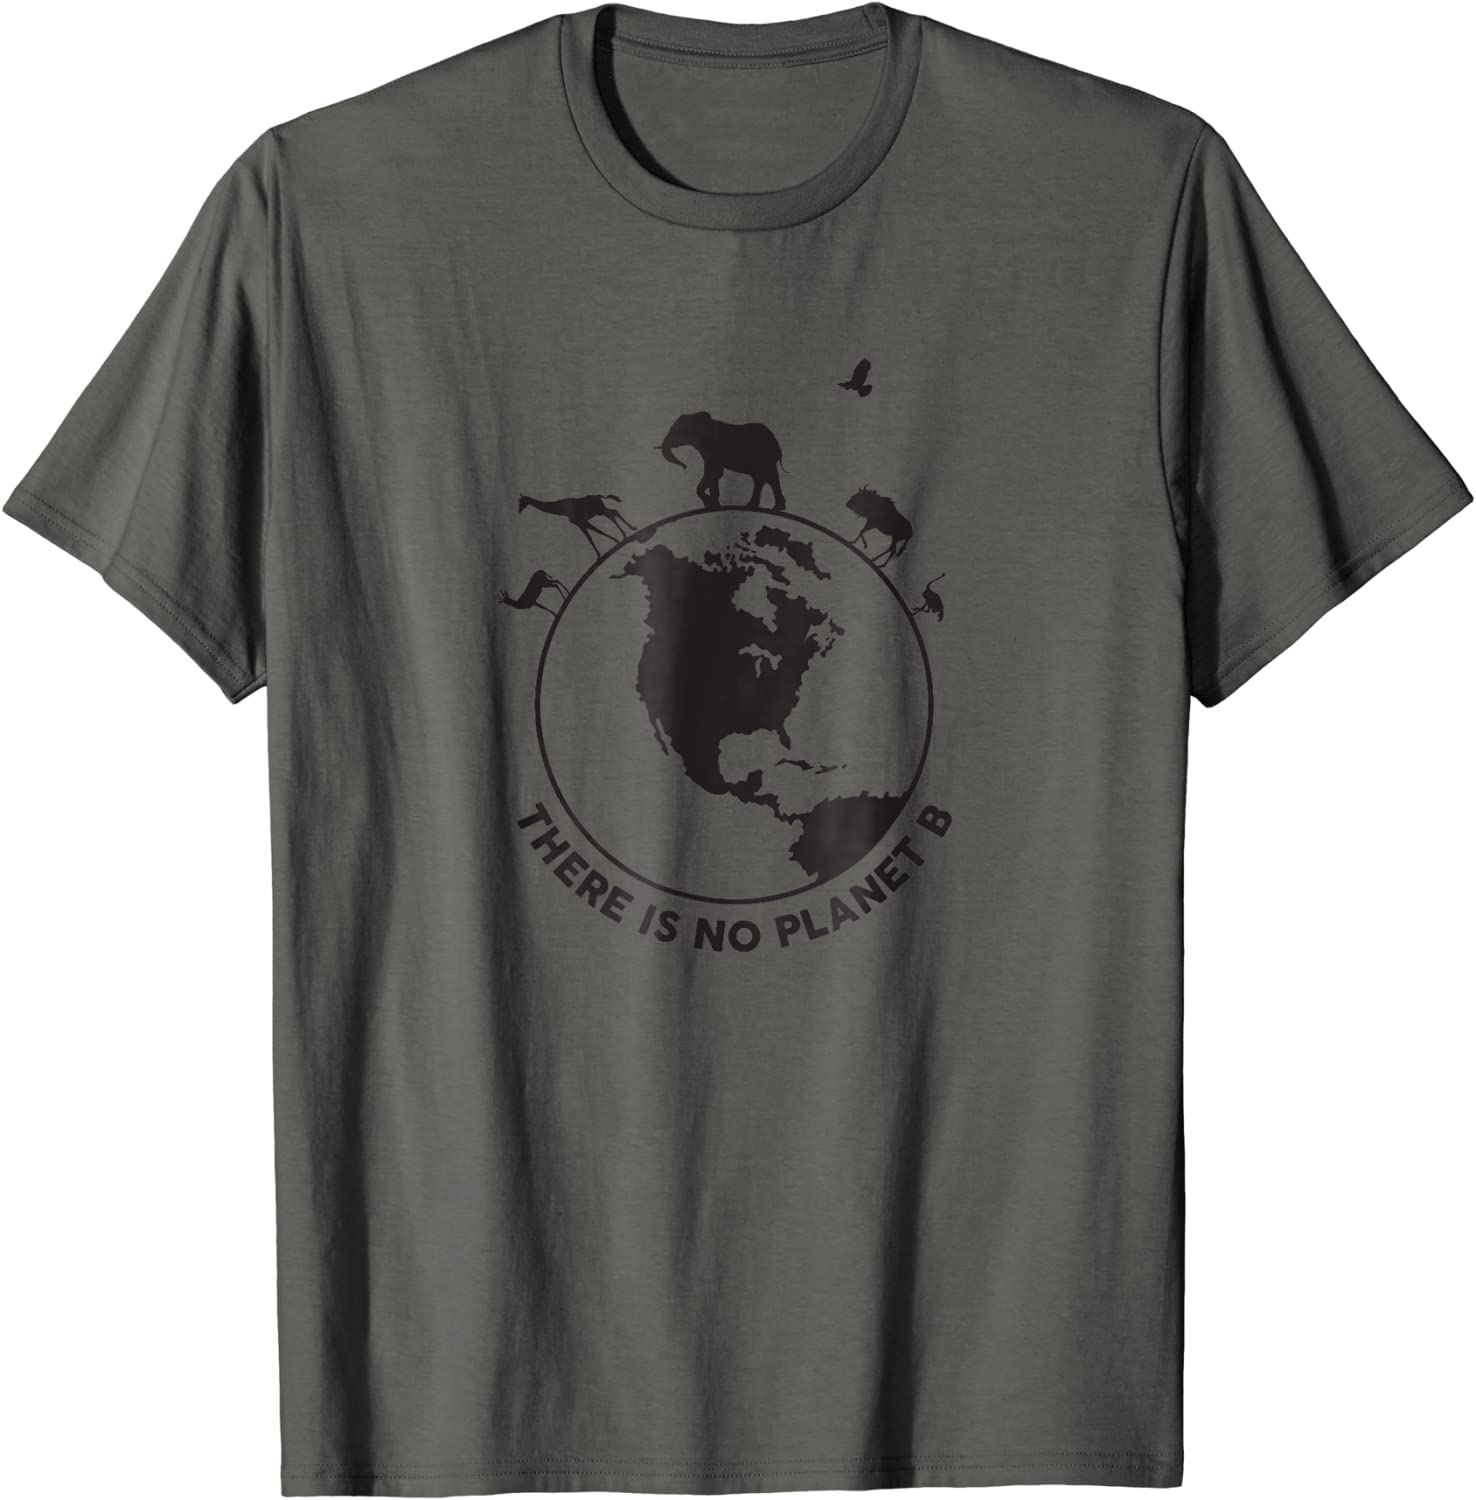 There is no Planet B Tee Shirt. Save the Planet!